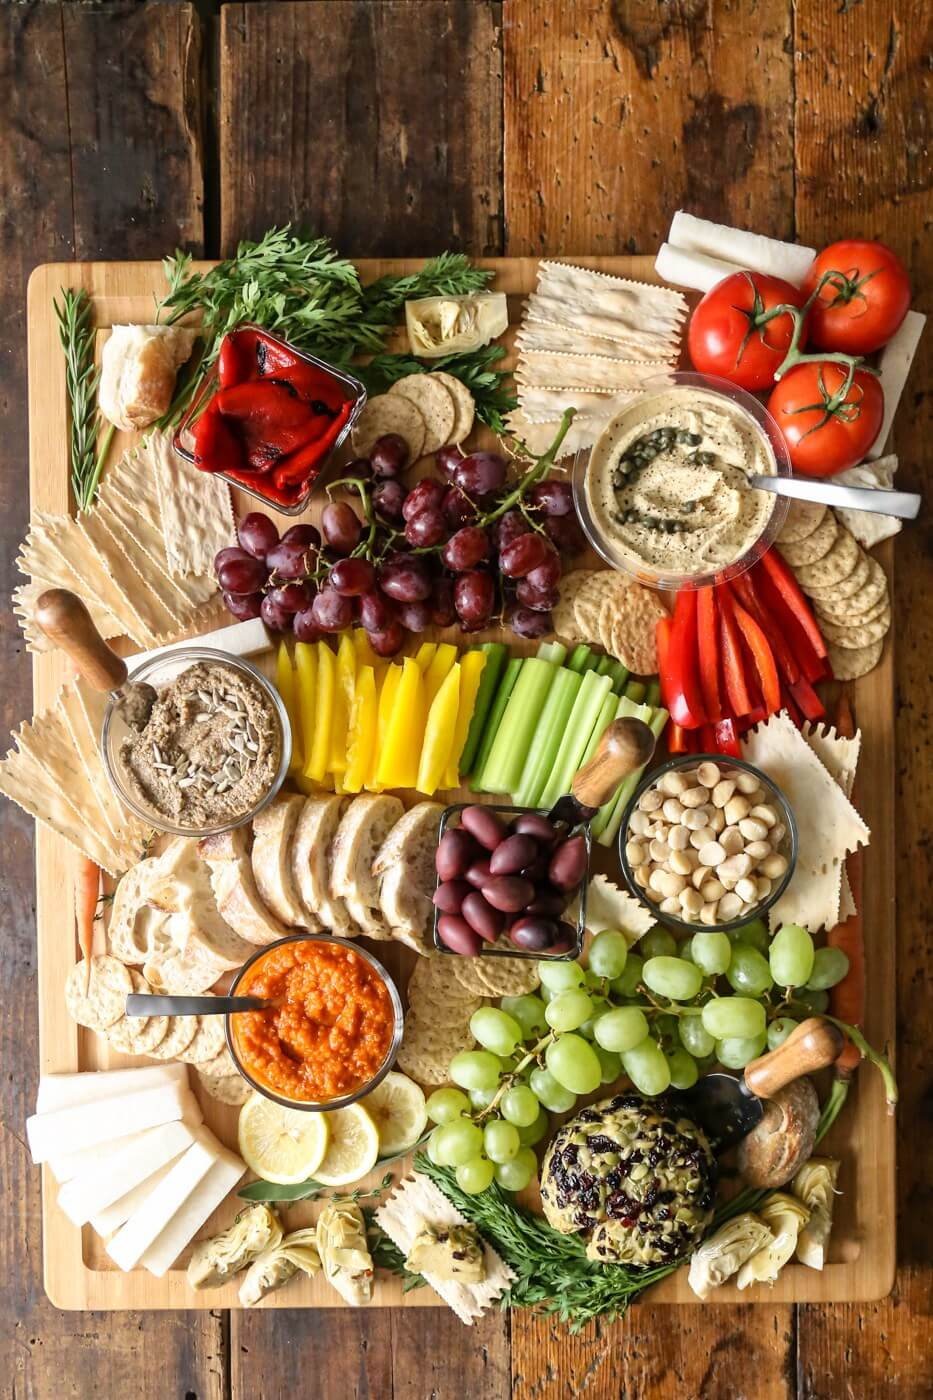 Vegan DIY Charcuterie Board // If you are struggling to come up with creative and filling dinners, we suggest you try creating cheese platters a few times week. You will be surprised how filling and satisfying they are. | The Green Loot #vegan #dairyfree